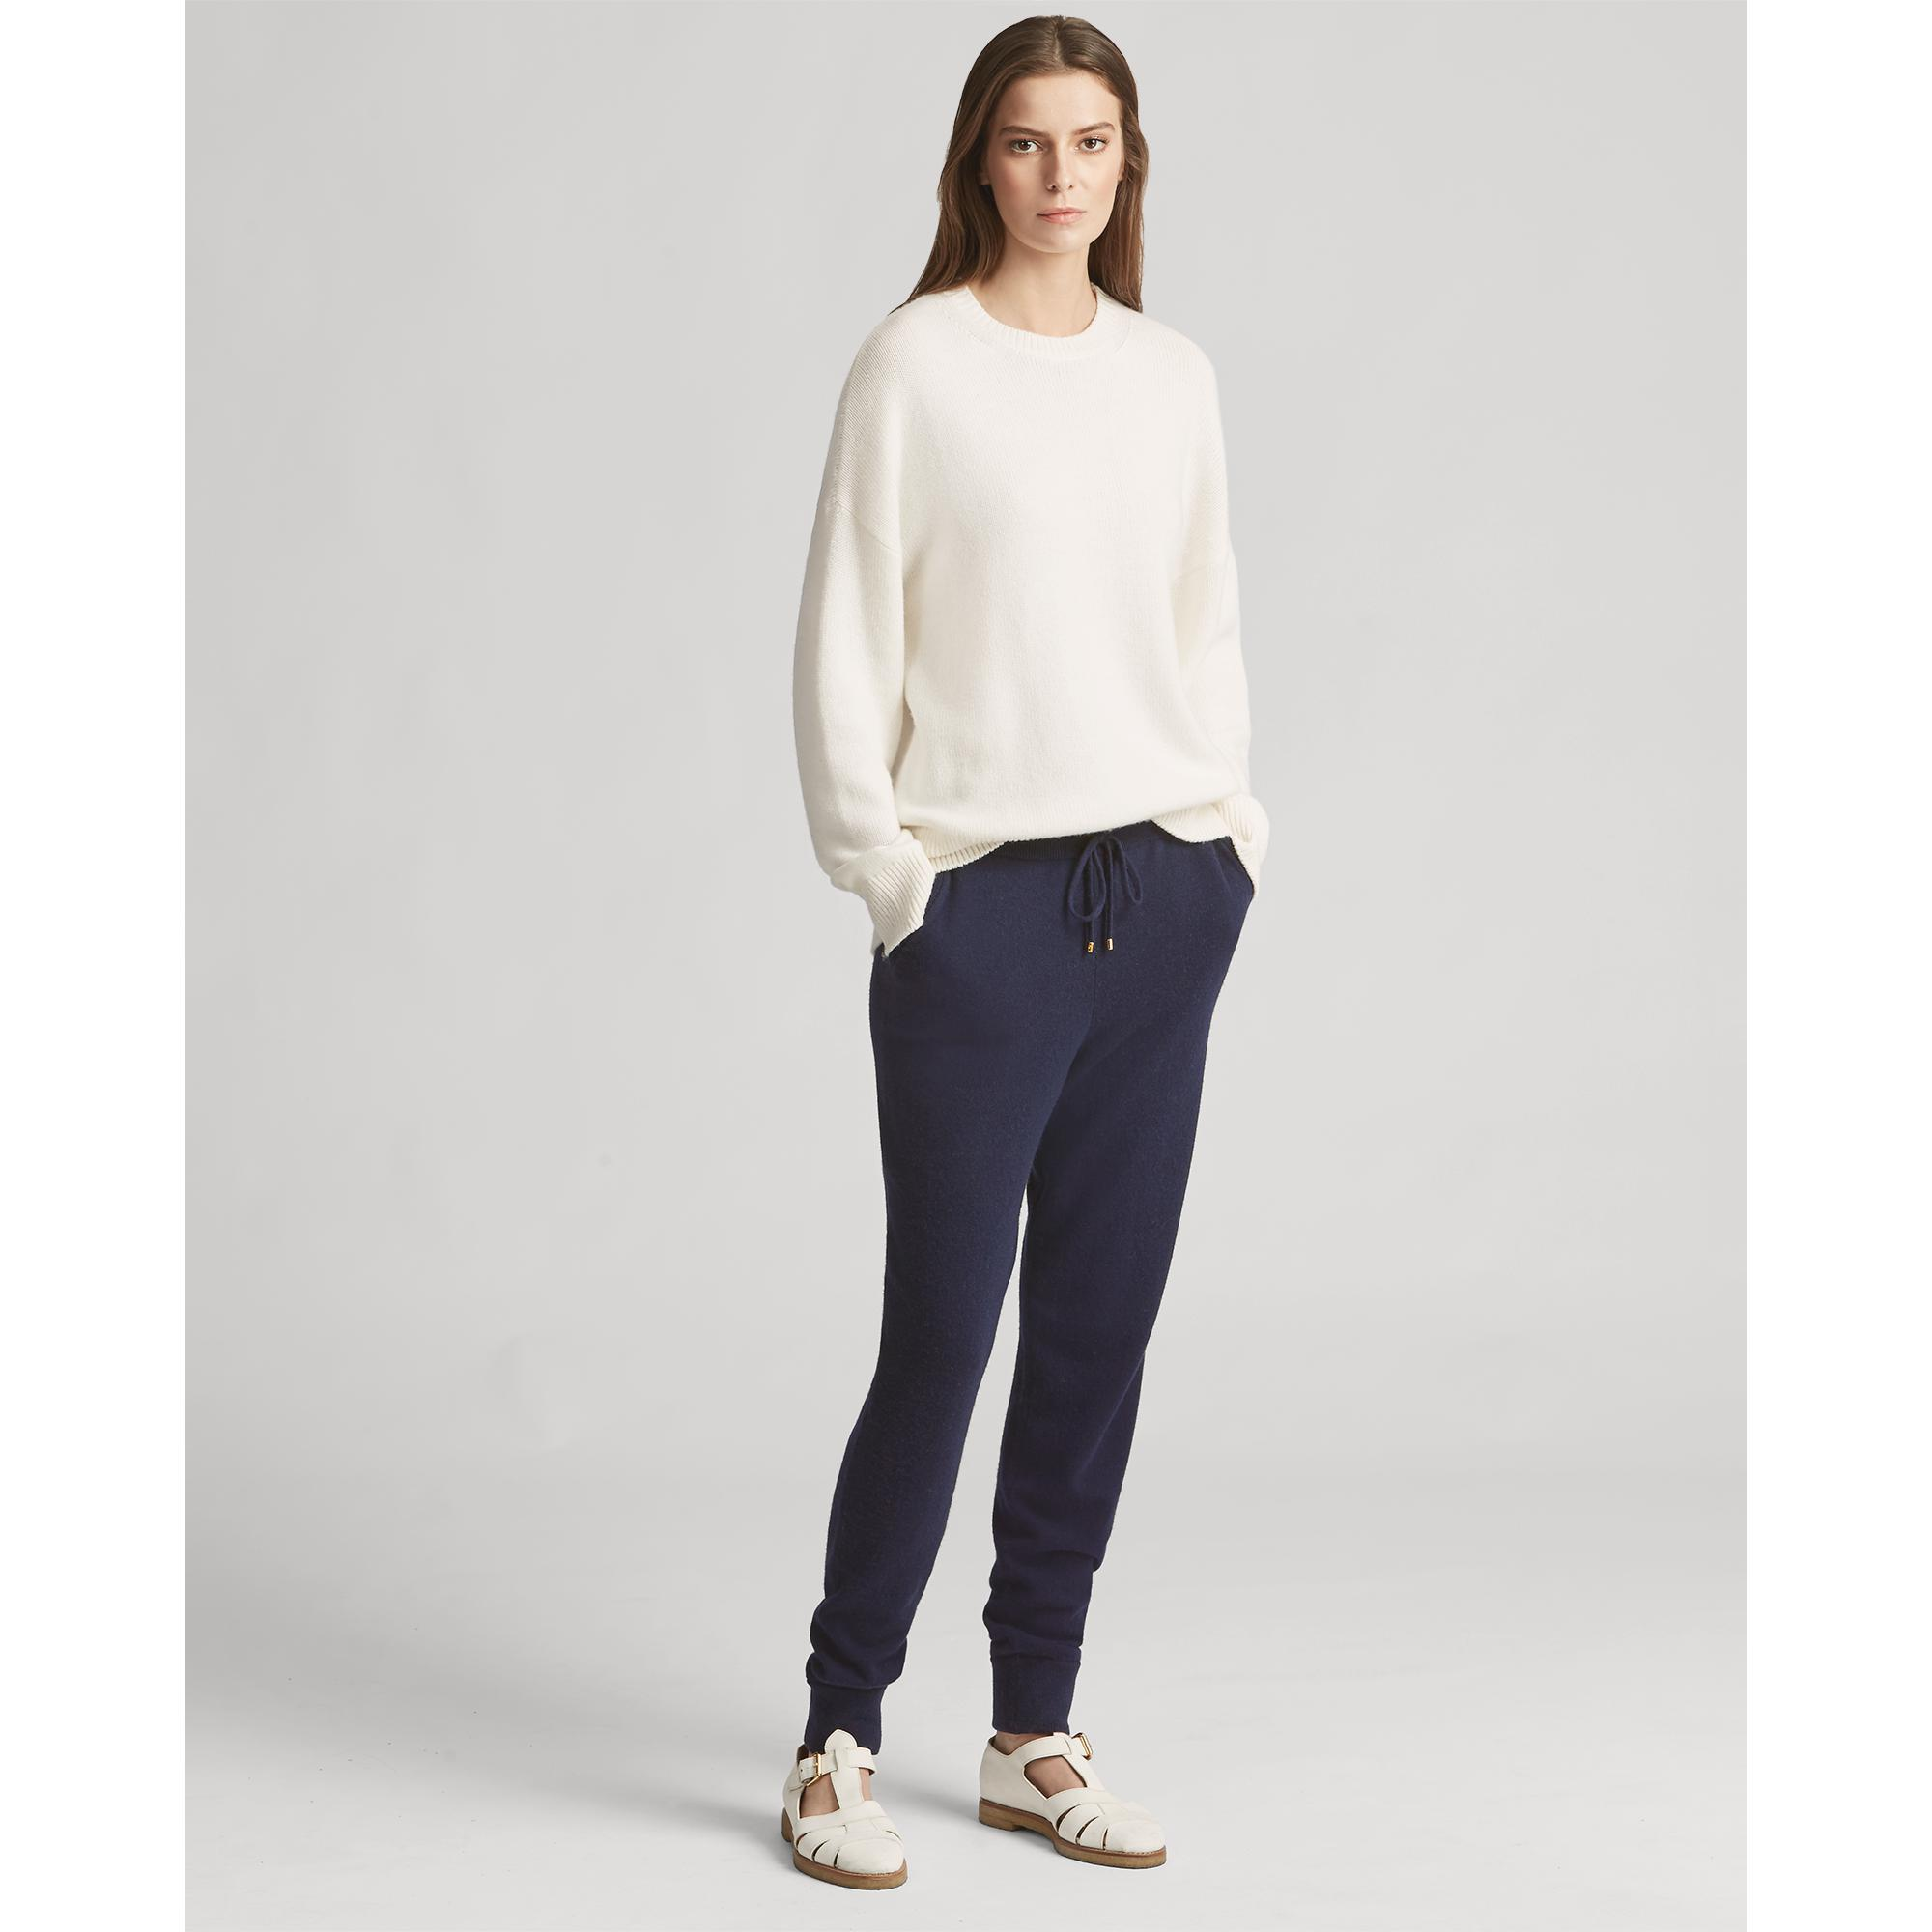 bd4cc3913f7fc Lyst - Ralph Lauren Collection Cashmere Jogger Pant in Blue